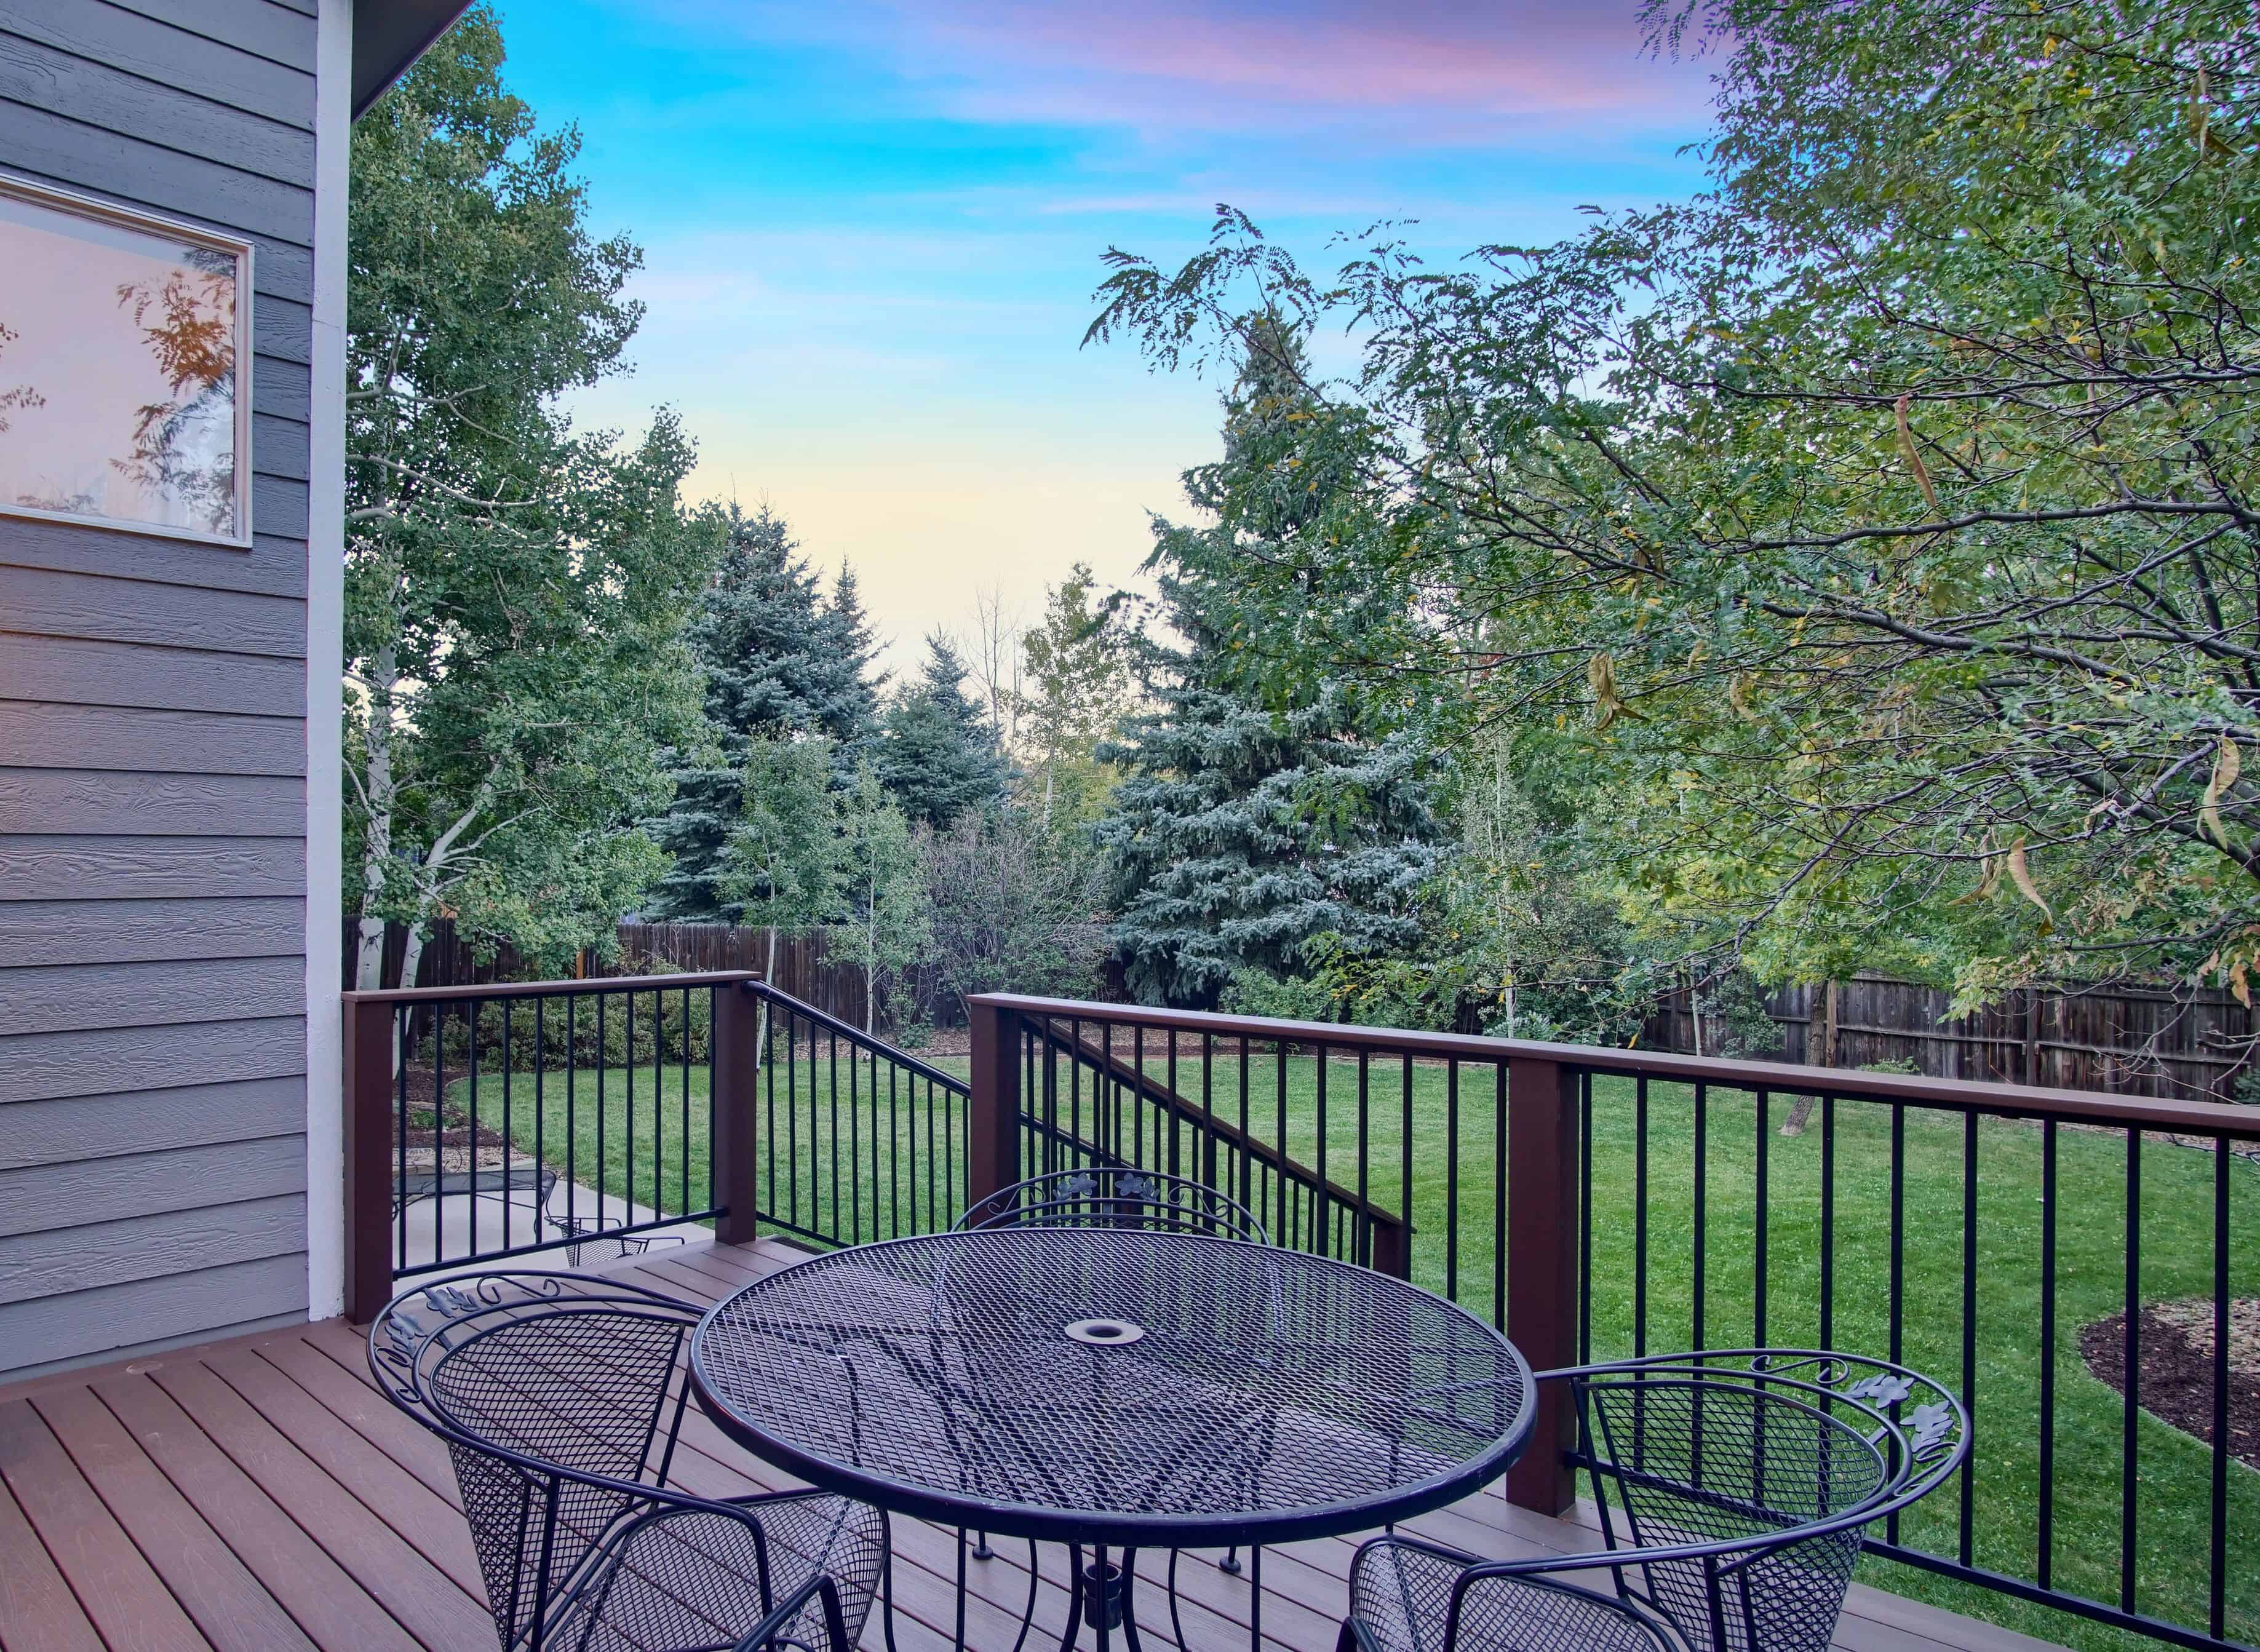 Private Lot with Mature Trees and Landscaping